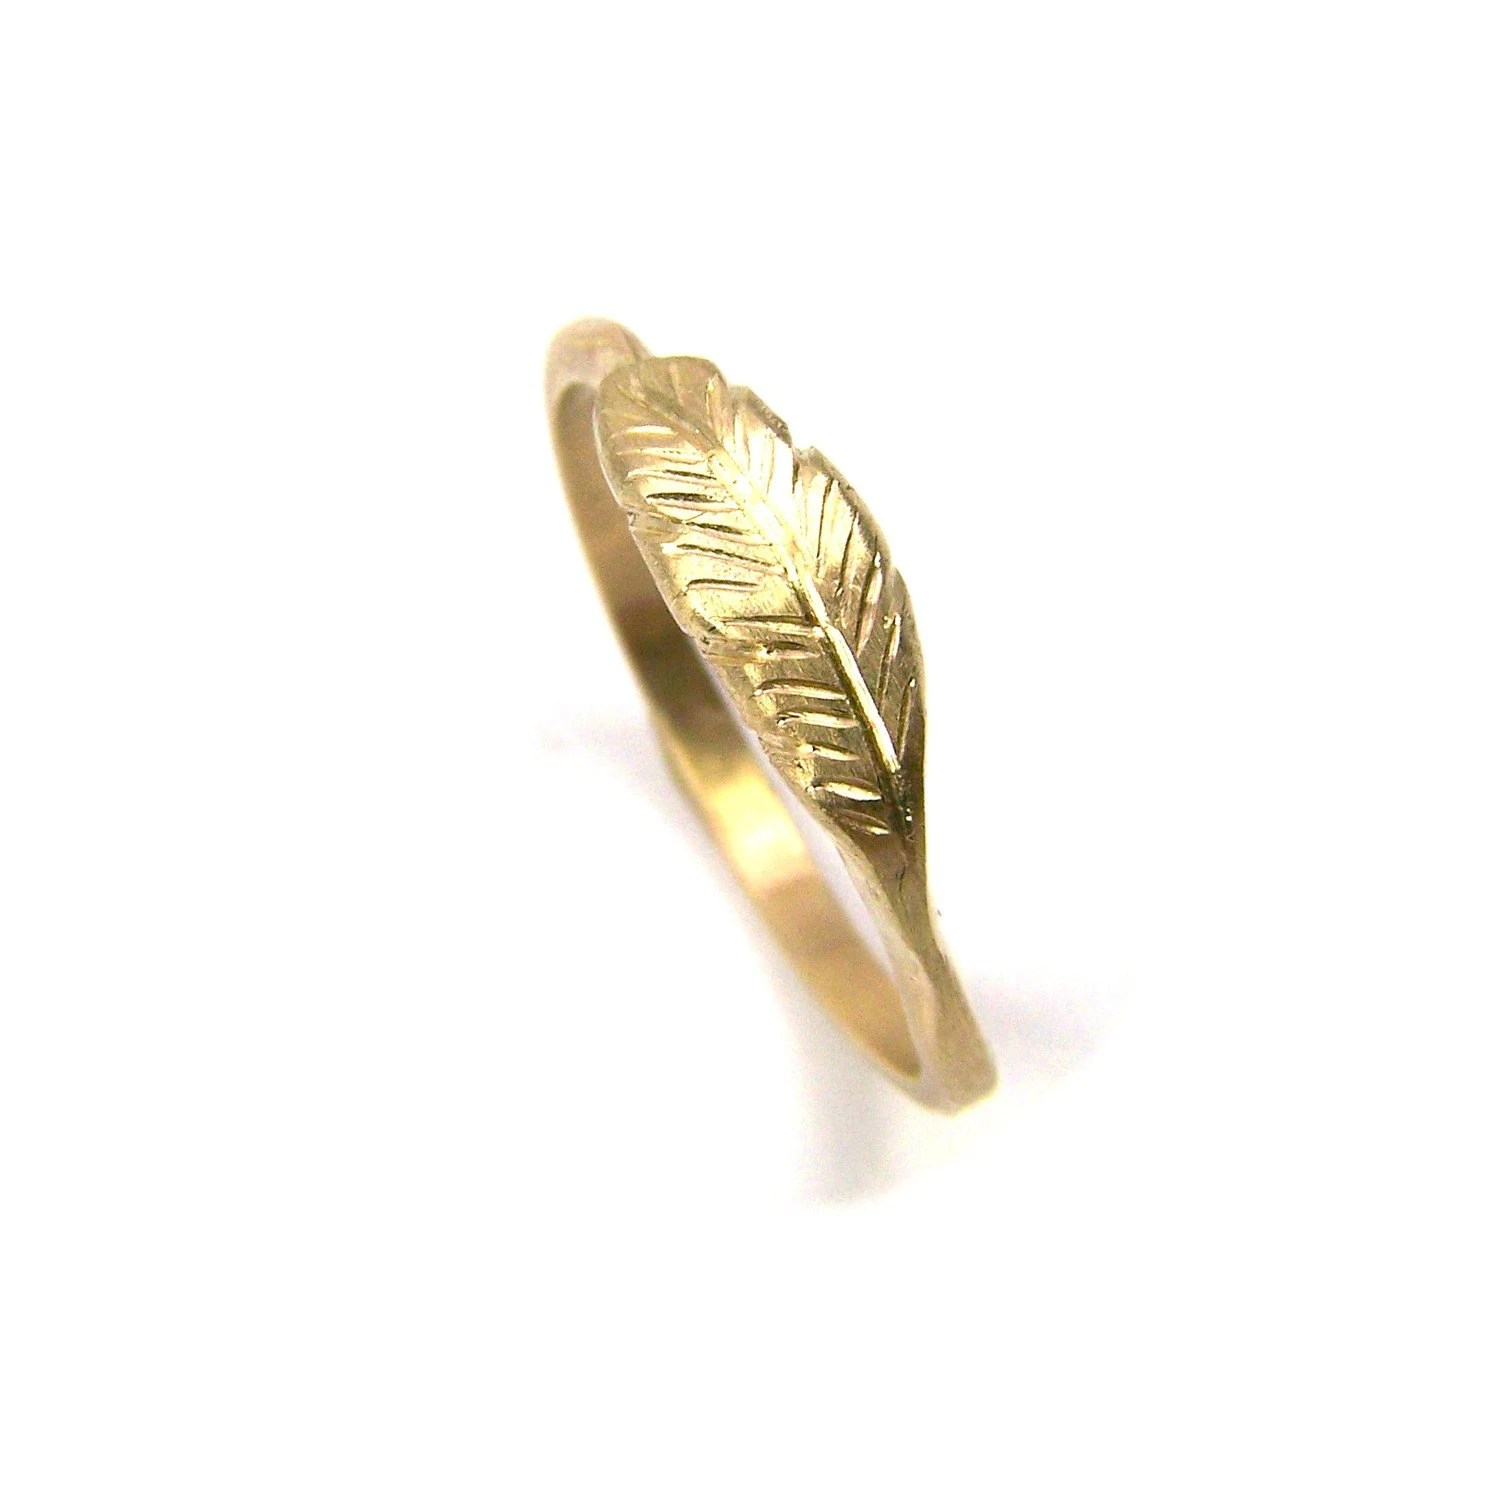 Organic 14K Yellow Gold Feather Ring - Feather's Gold